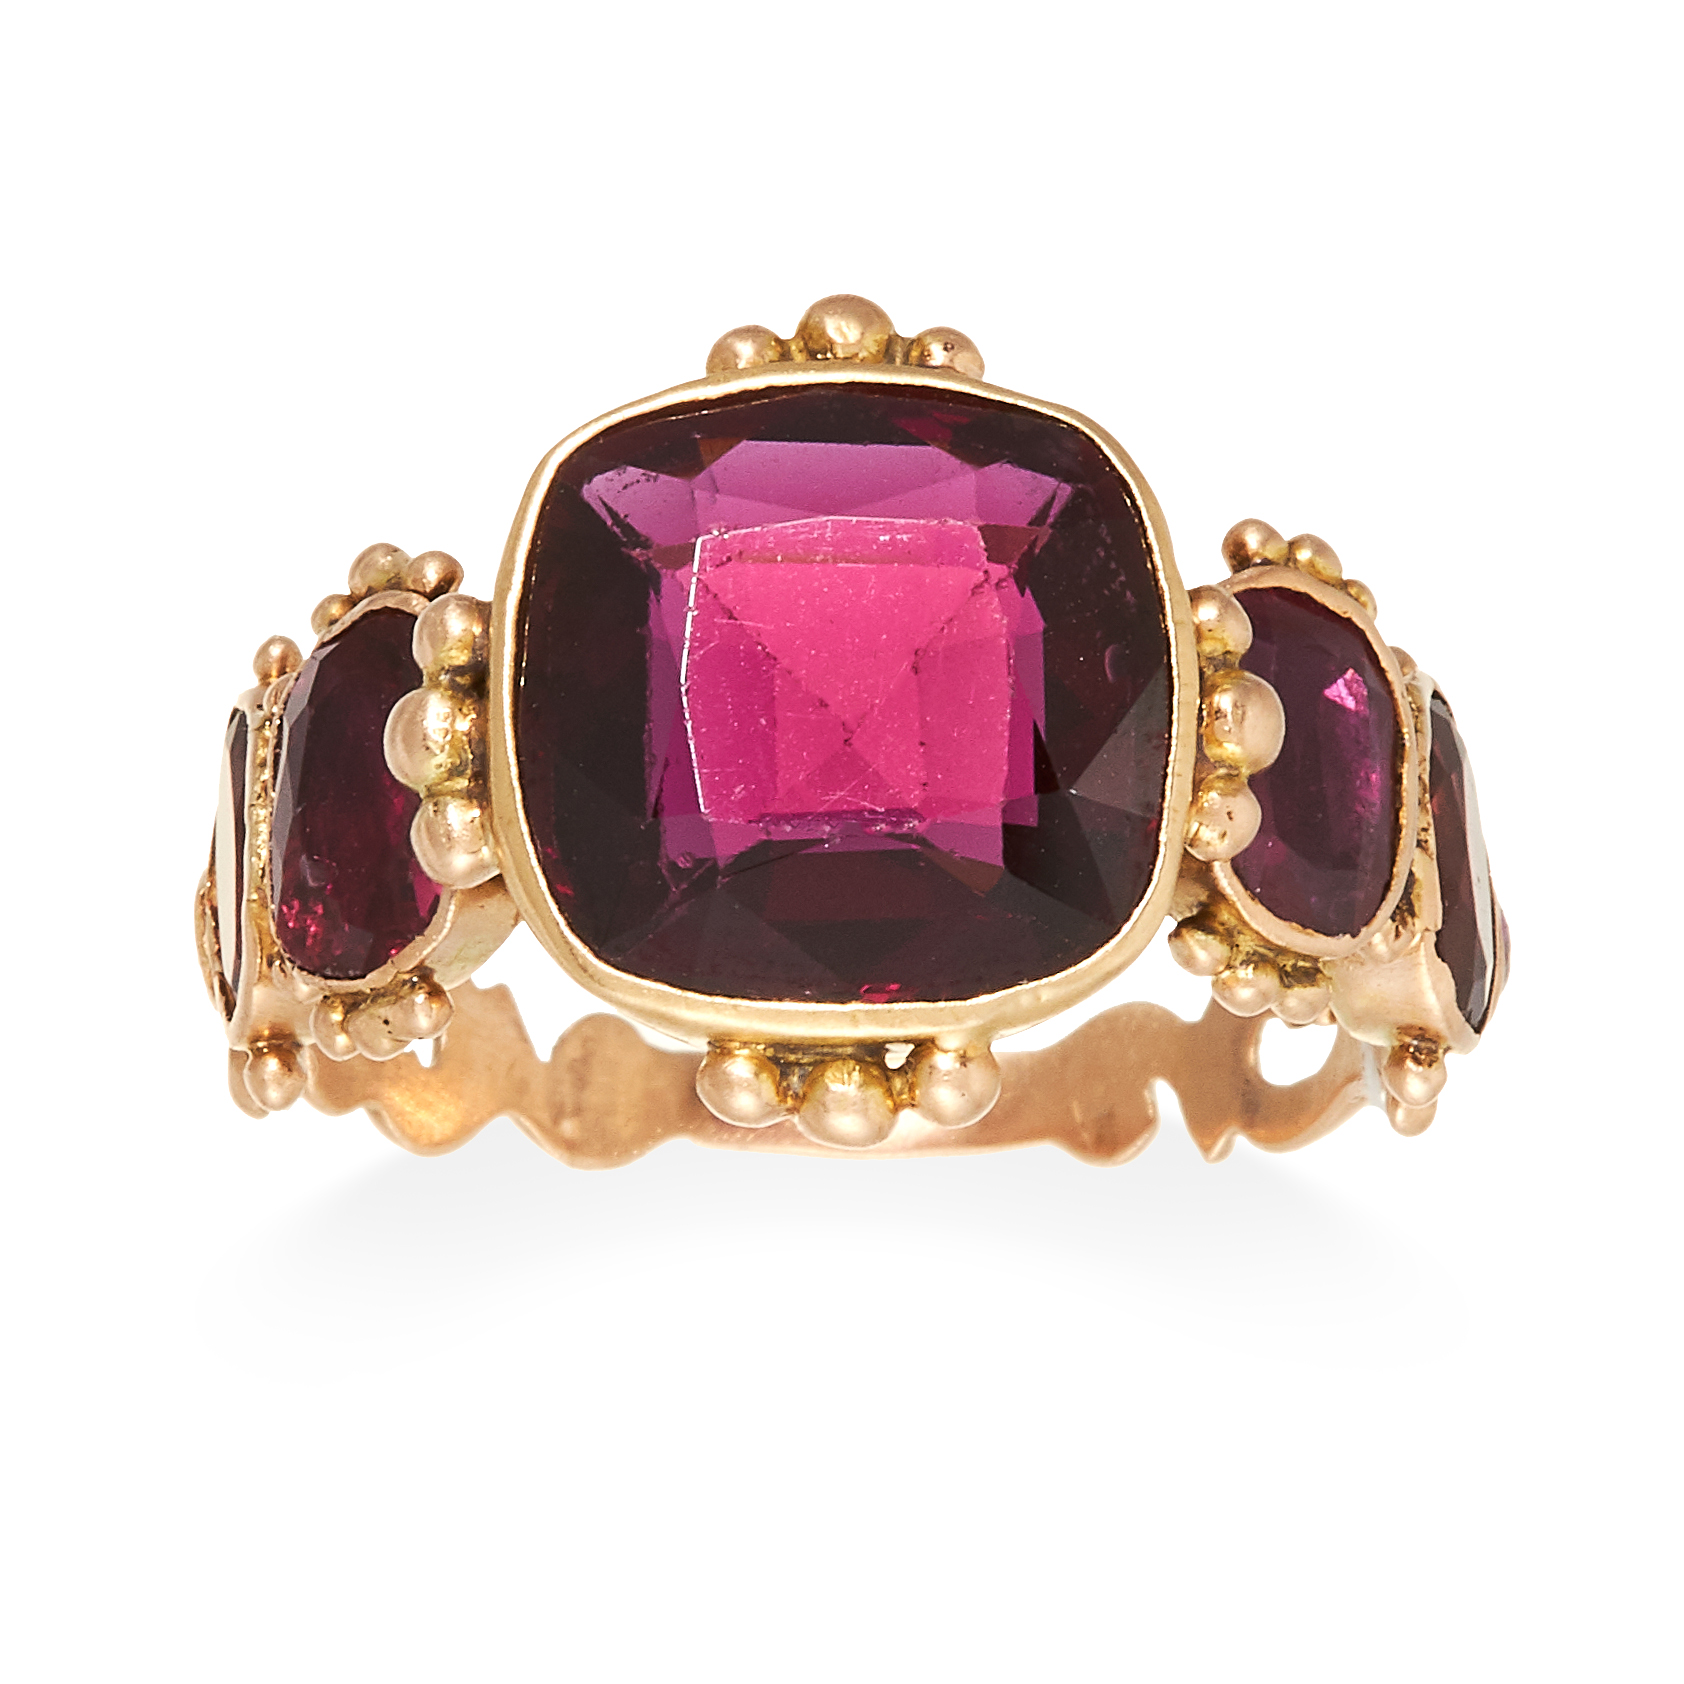 AN ANTIQUE GARNET RING, 19TH CENTURY in high carat yellow gold, set with a central cushion cut